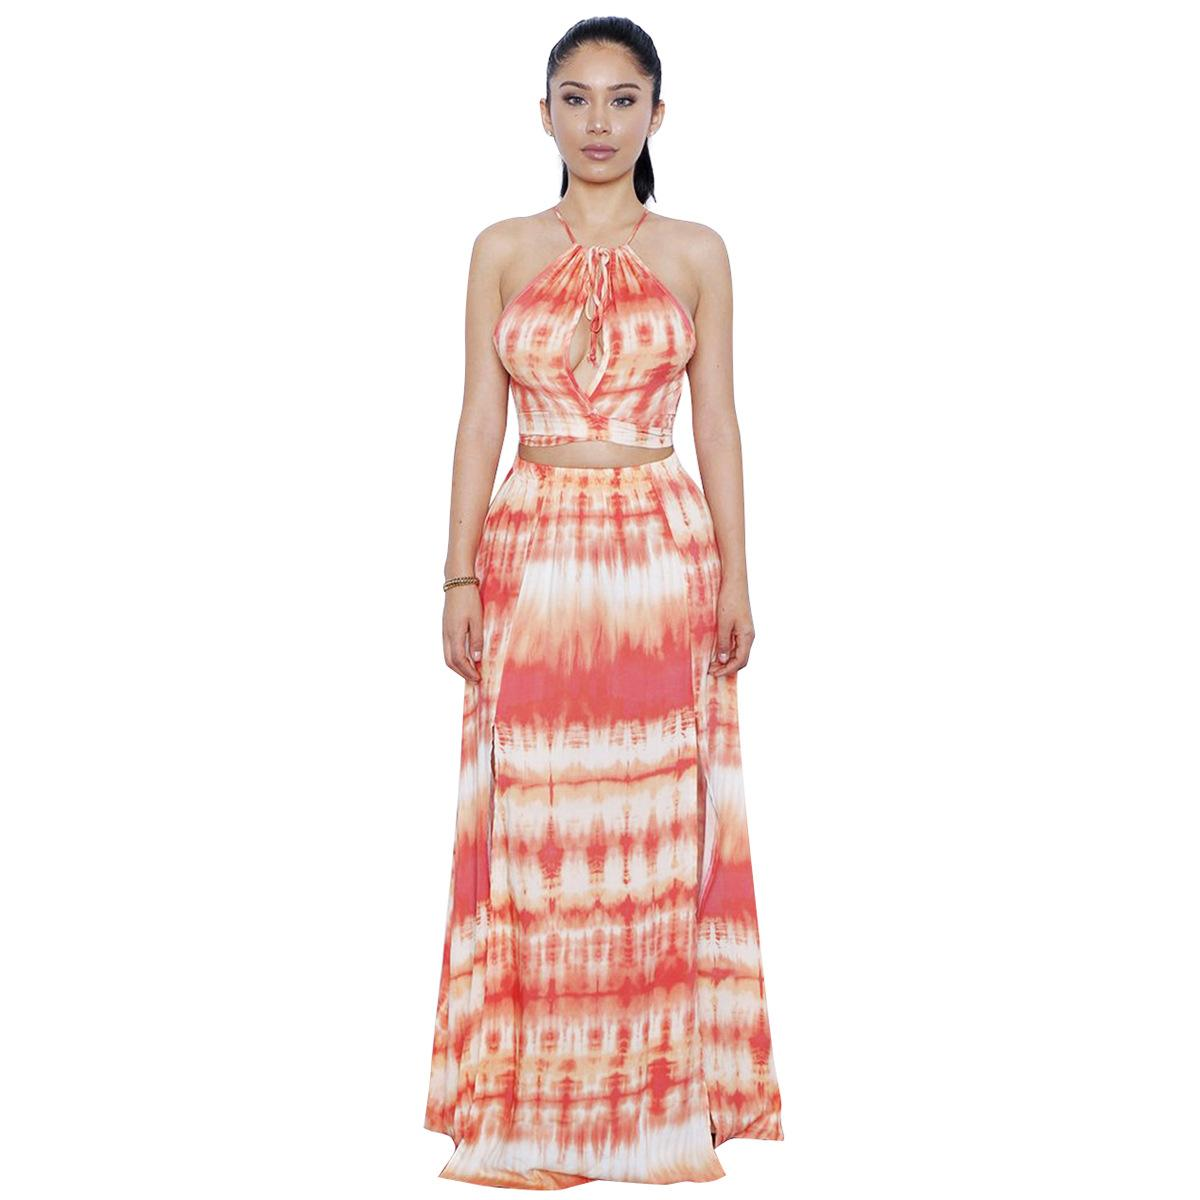 dada0129cce 2019 Two Piece Set Tie Dye Dress Women Sundress Robe Club Sexy Off Shoulder Crop  Top And Maxi Skirt Sets Long Party Summer Beach Sets From Meinuo004